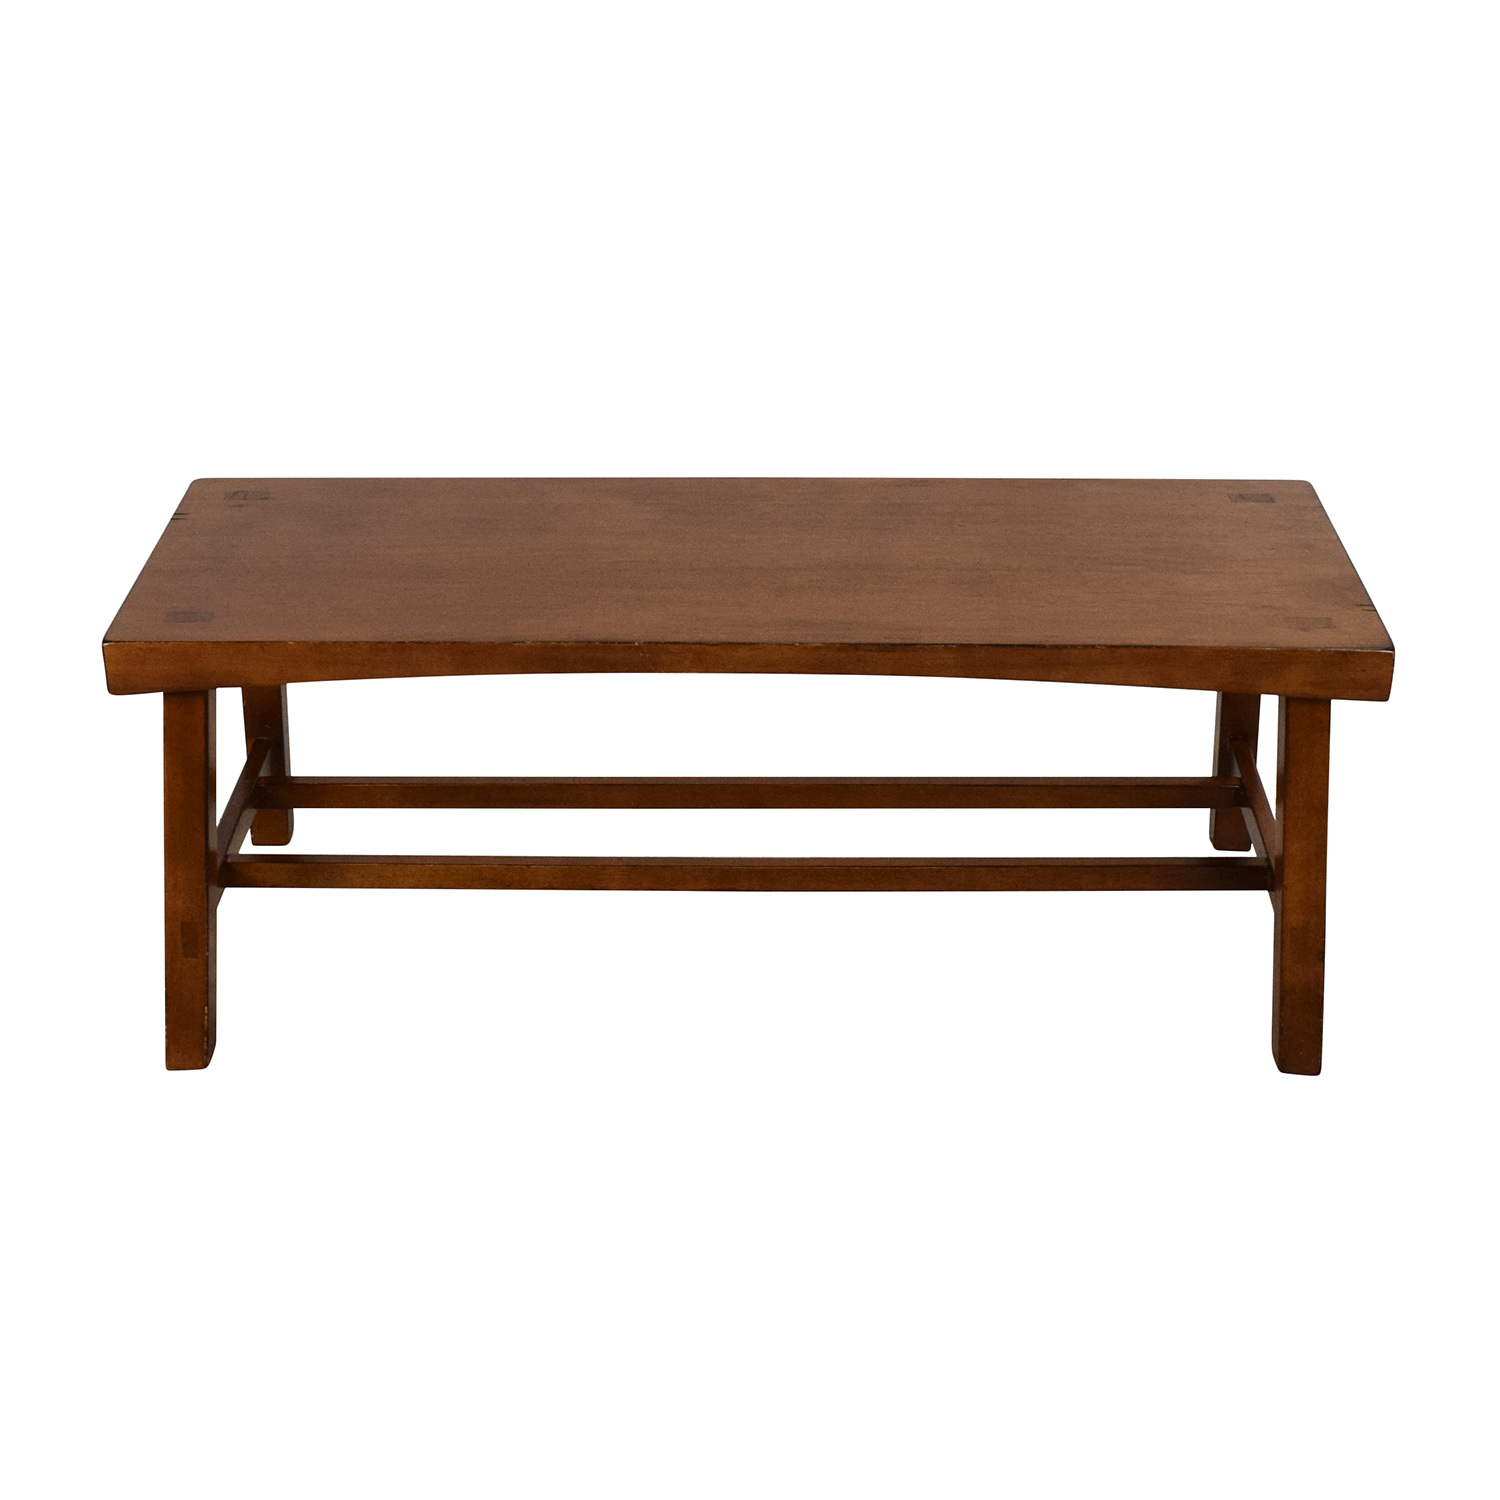 Awesome 74 Off Crate Barrel Crate Barrel Wooden Coffee Table Tables Pdpeps Interior Chair Design Pdpepsorg